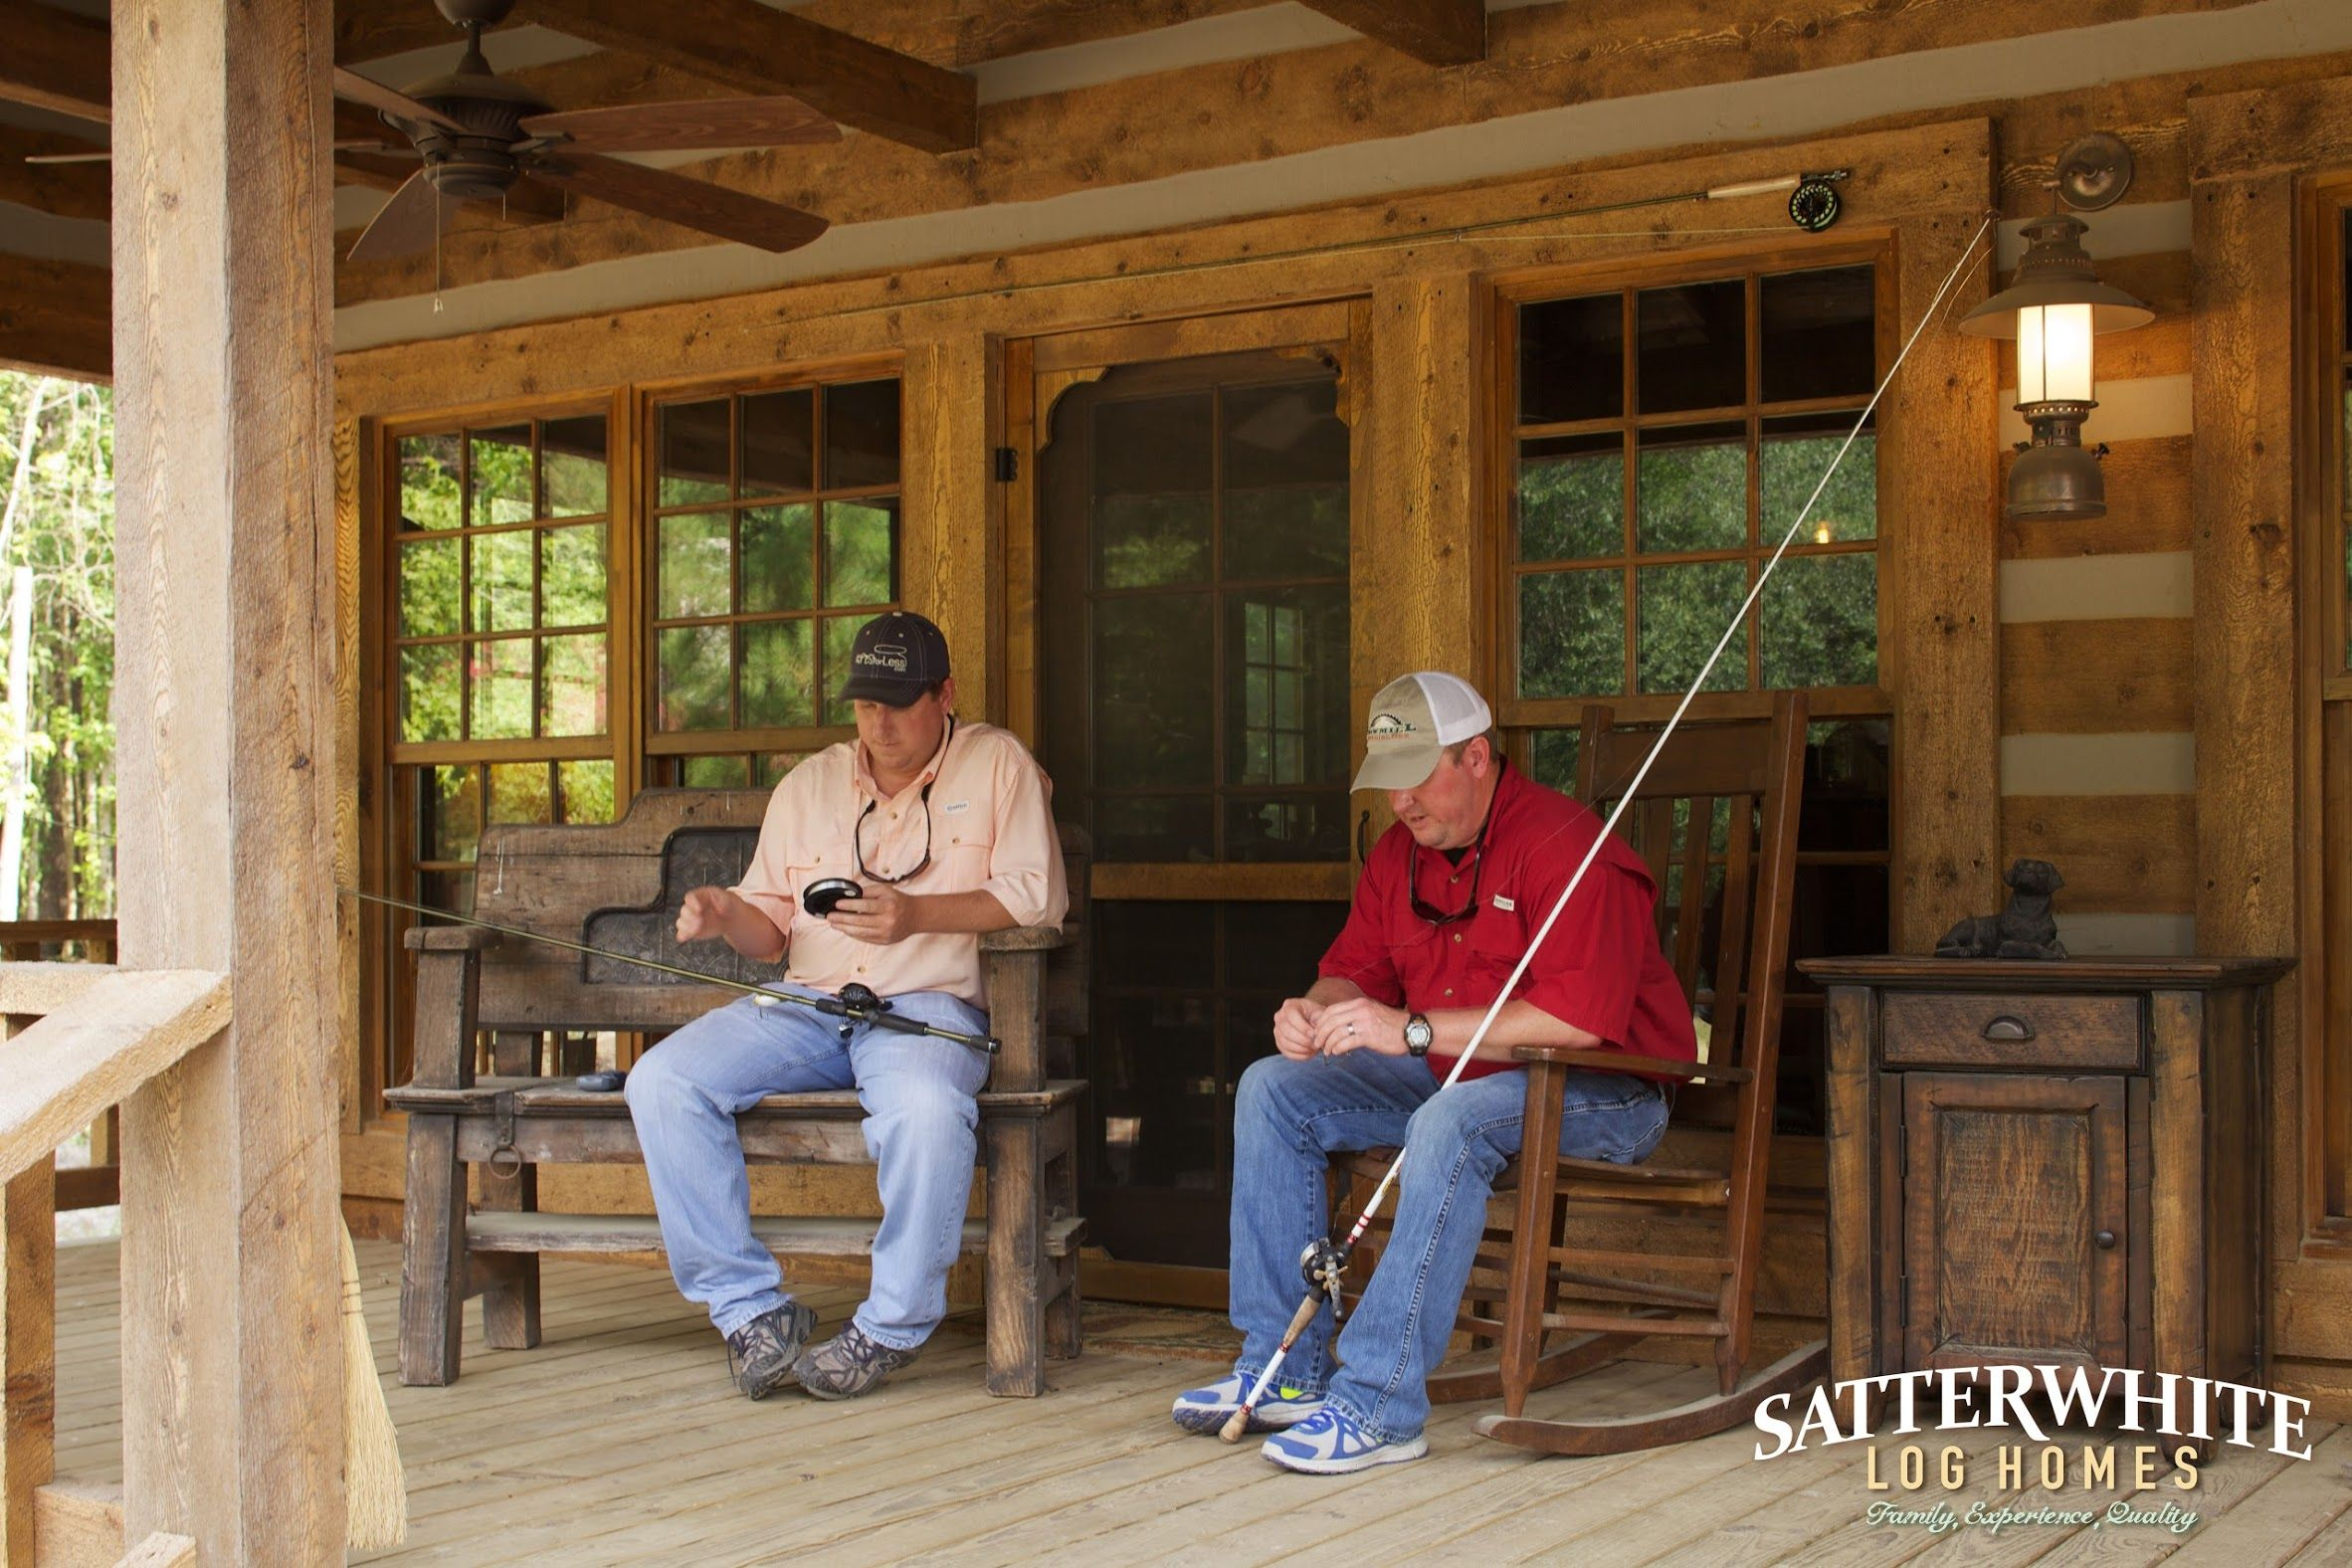 Photo in Satterwhite Log Homes - Hunting & Fishing Cabin - Google Photos